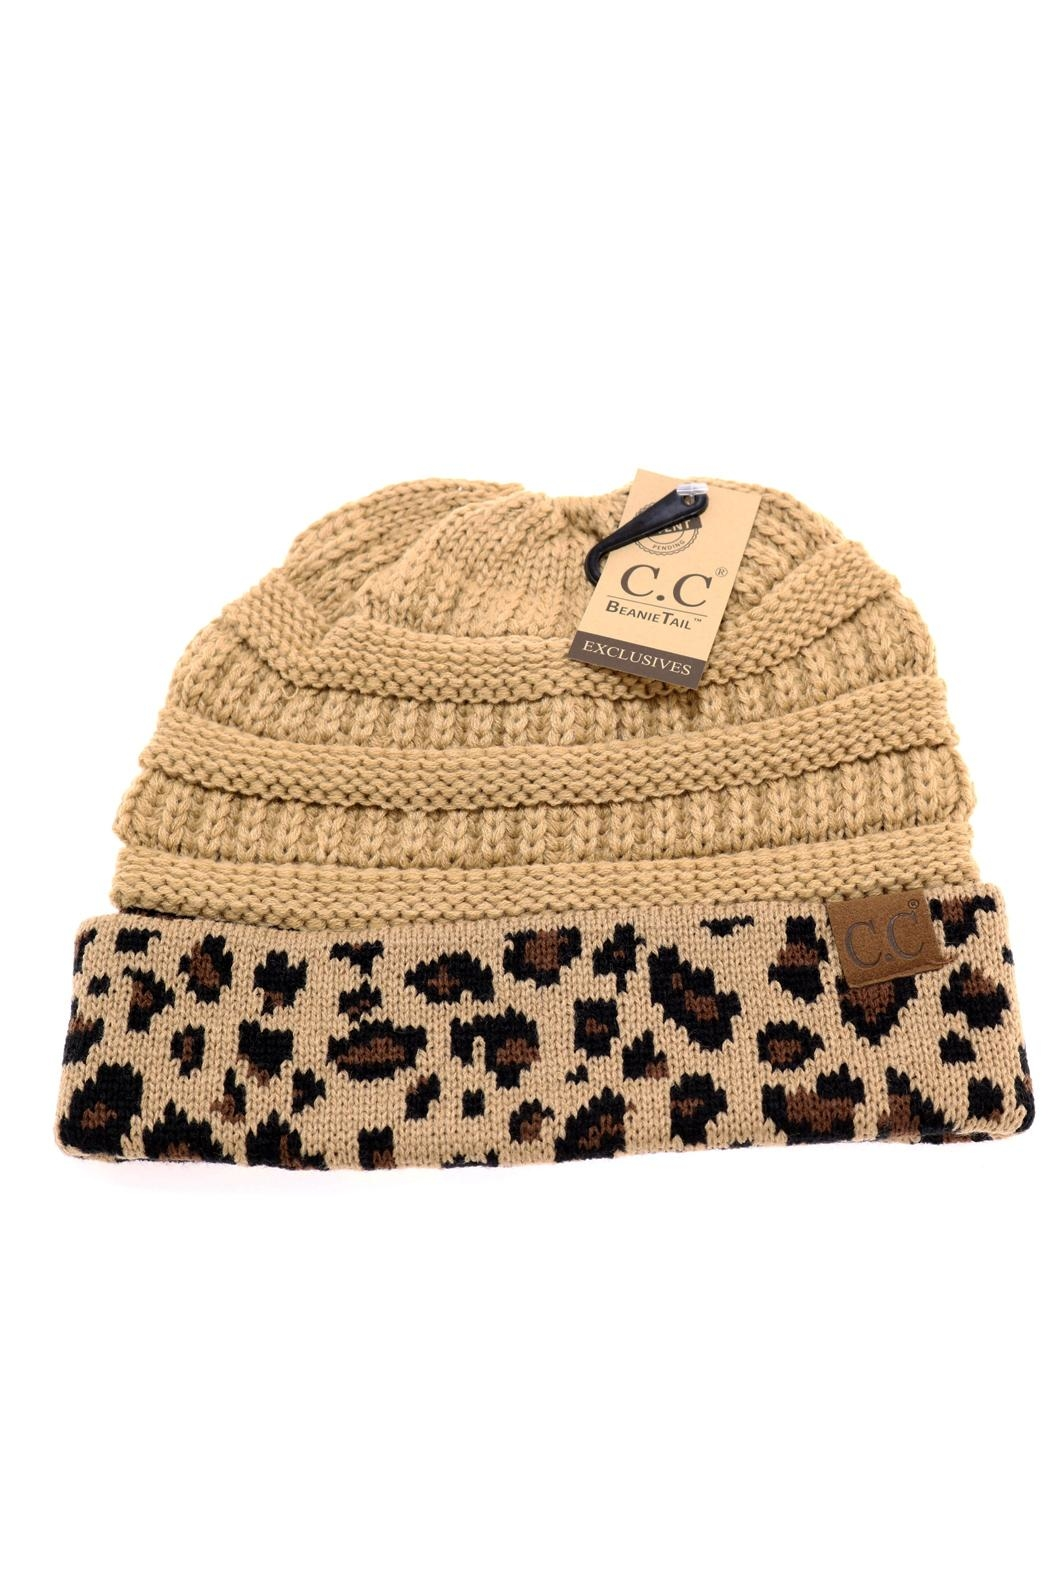 8a73f5b00af C.C Beanie Tan-Leopard Ponytail_bun Beanie from Texas by Pickles and ...